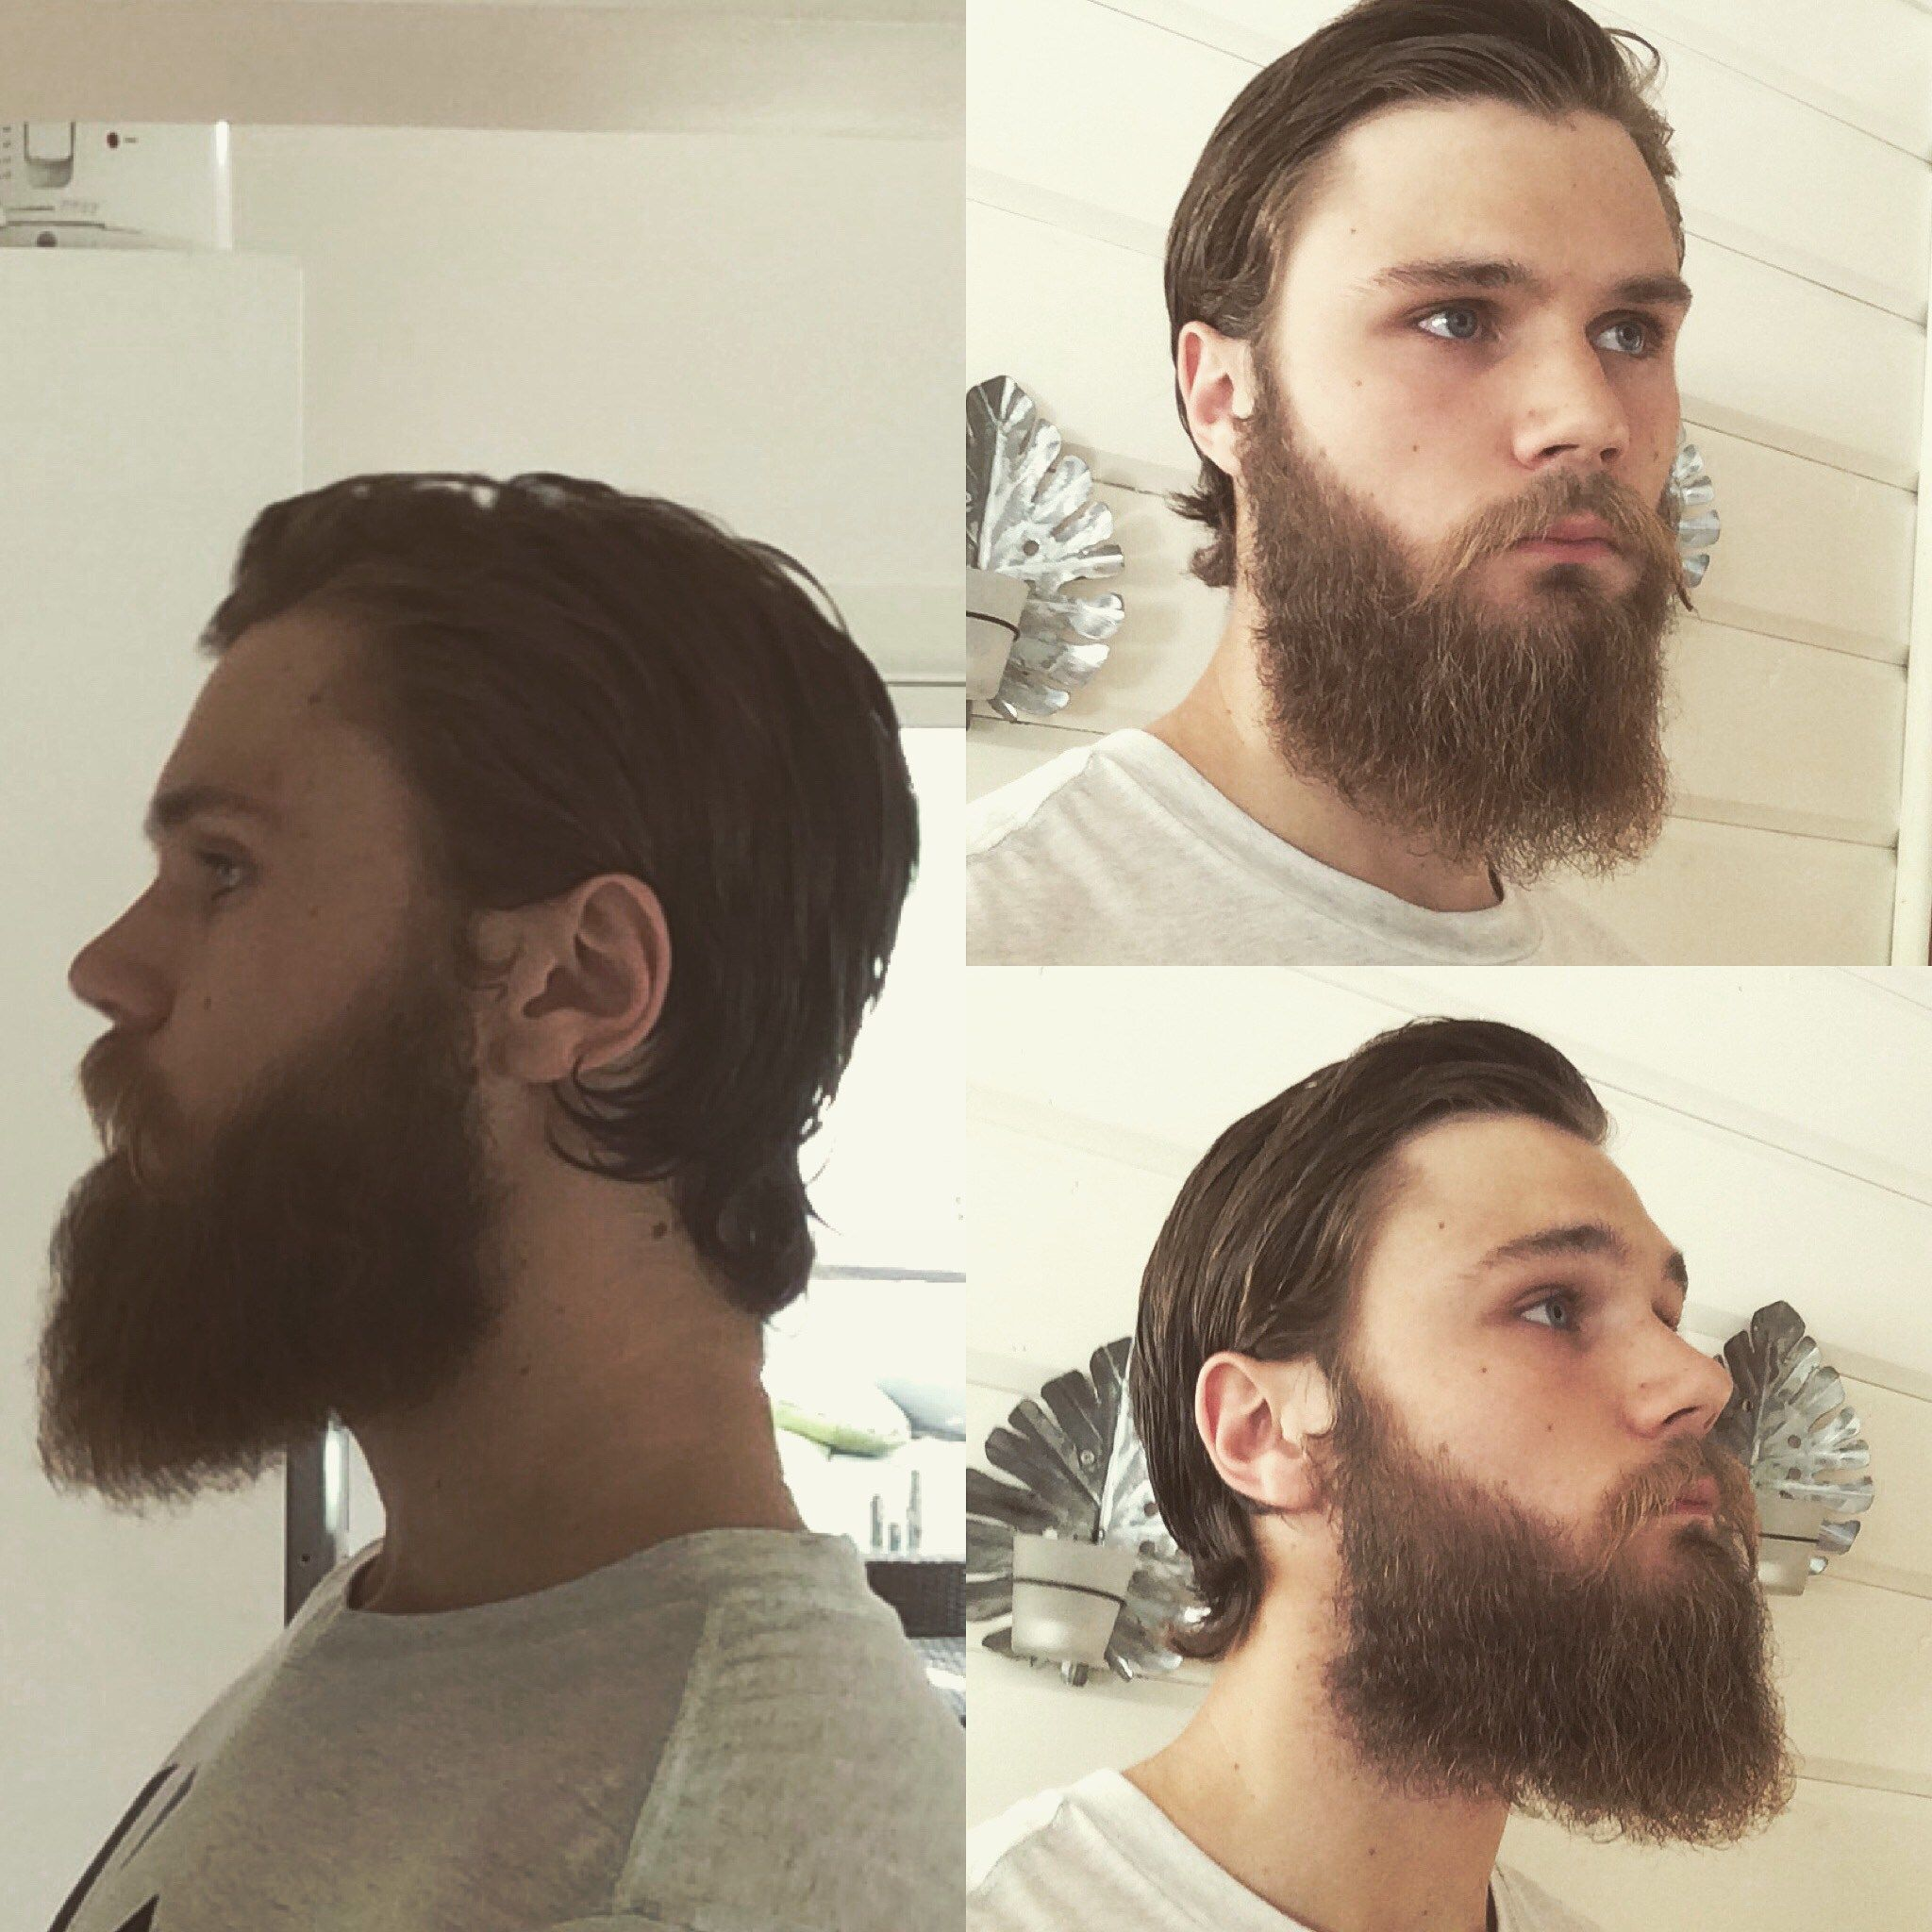 Visit Ratemybeard.se and check out @daannejohansson - http://ratemybeard.se/daannejohansson/ - support #heartbeard - Don't forget to vote, comment and please share this with your friends.